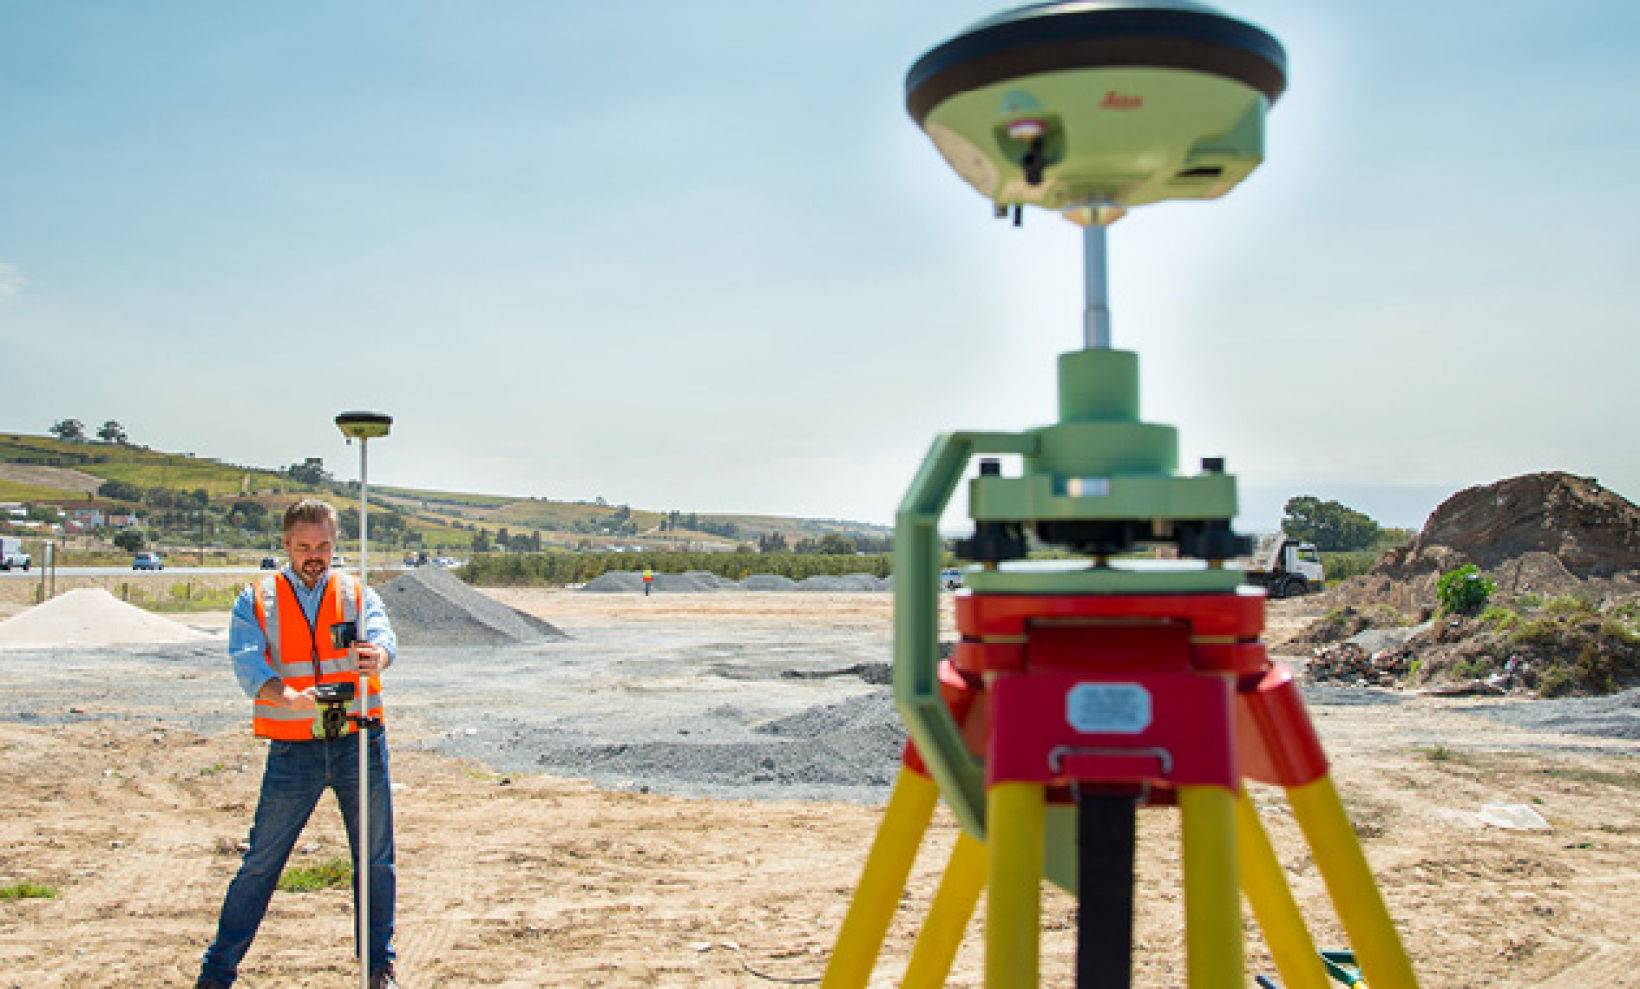 Users in the geomatics community are already very aware of the benefits that EGNSS offers.